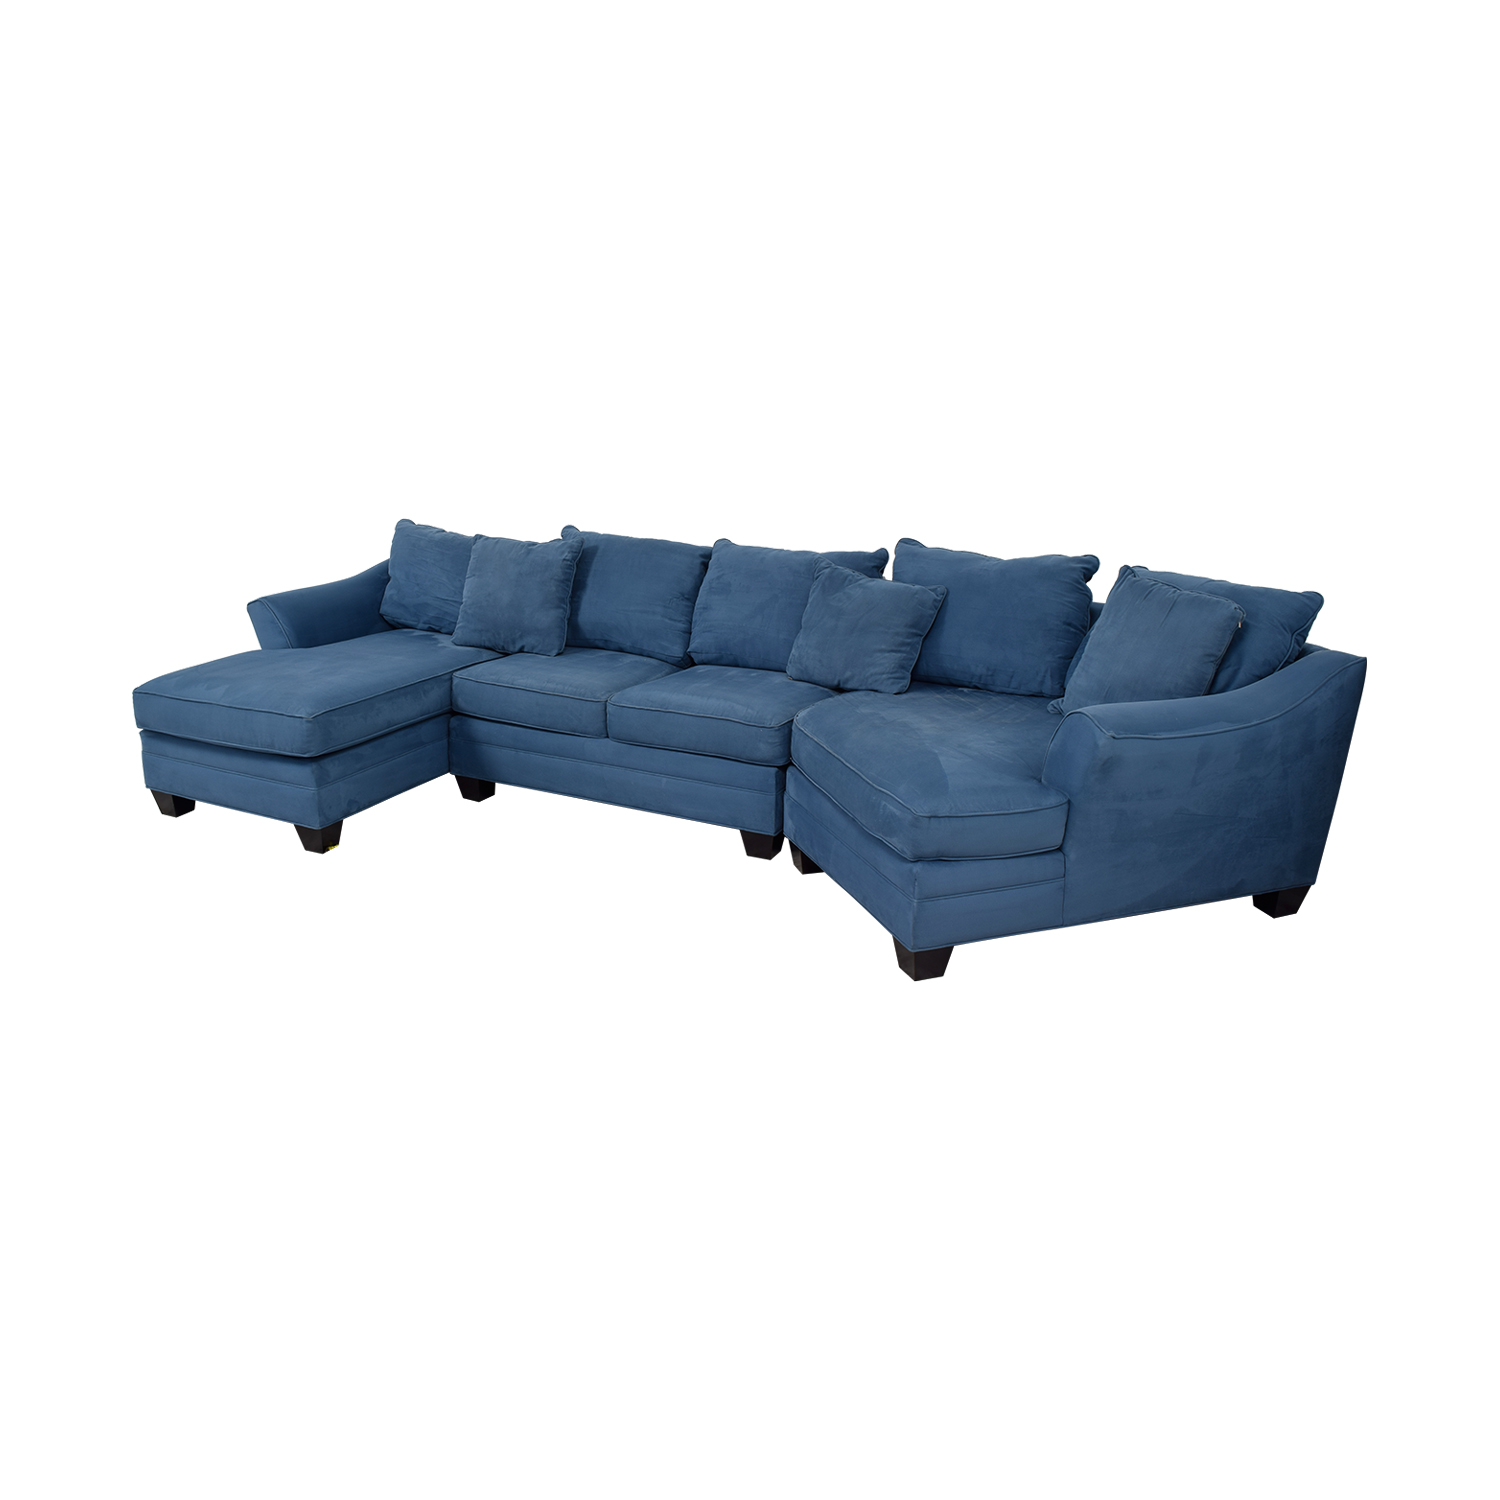 H M Richards Foresthill Blue Microfiber Chaise And Corner Seat Sectional Second Hand